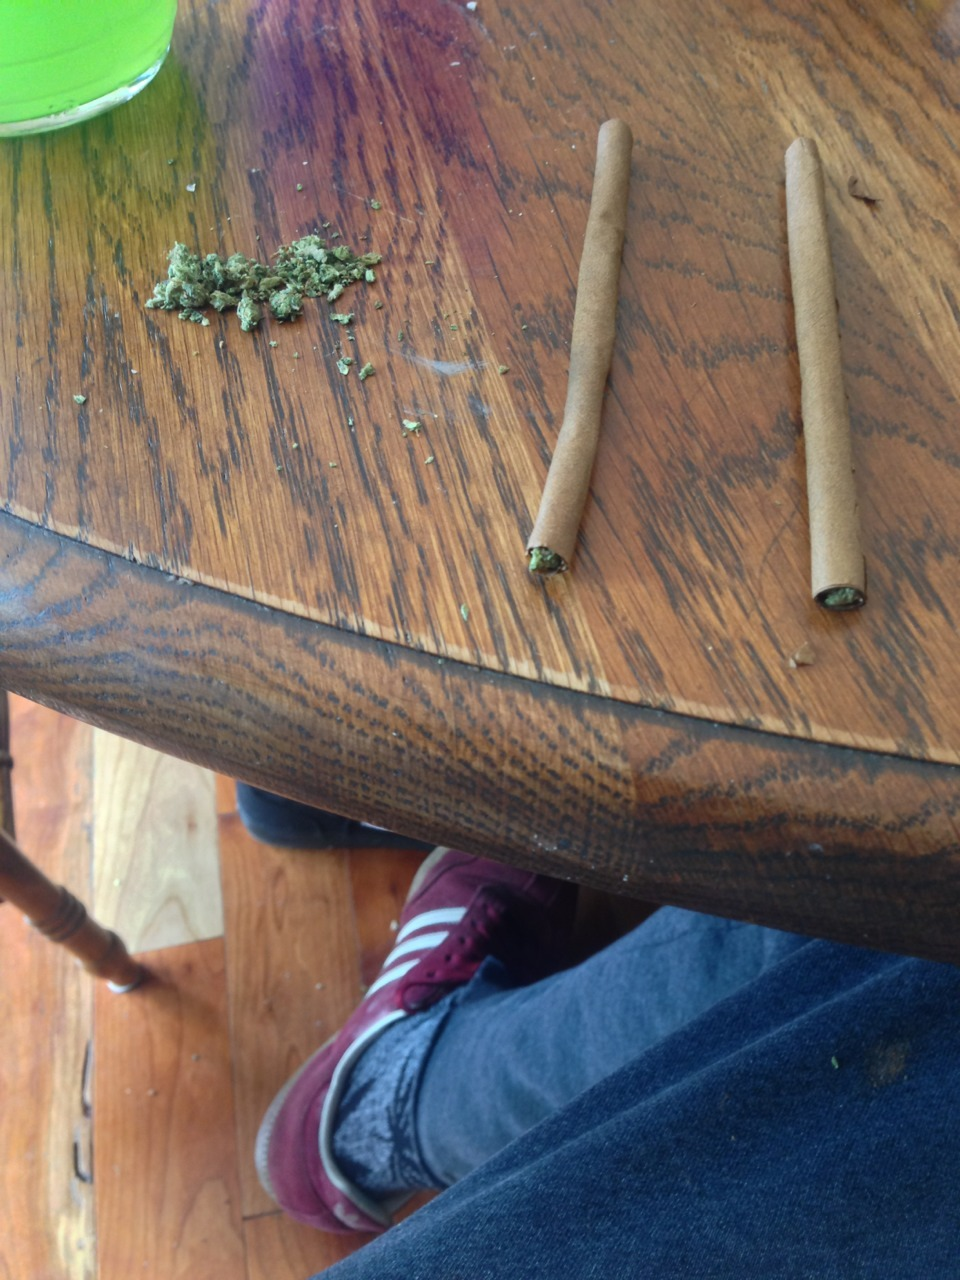 Pearls ✔,hemp shoes ✔,huf socks✔,Sunday funday